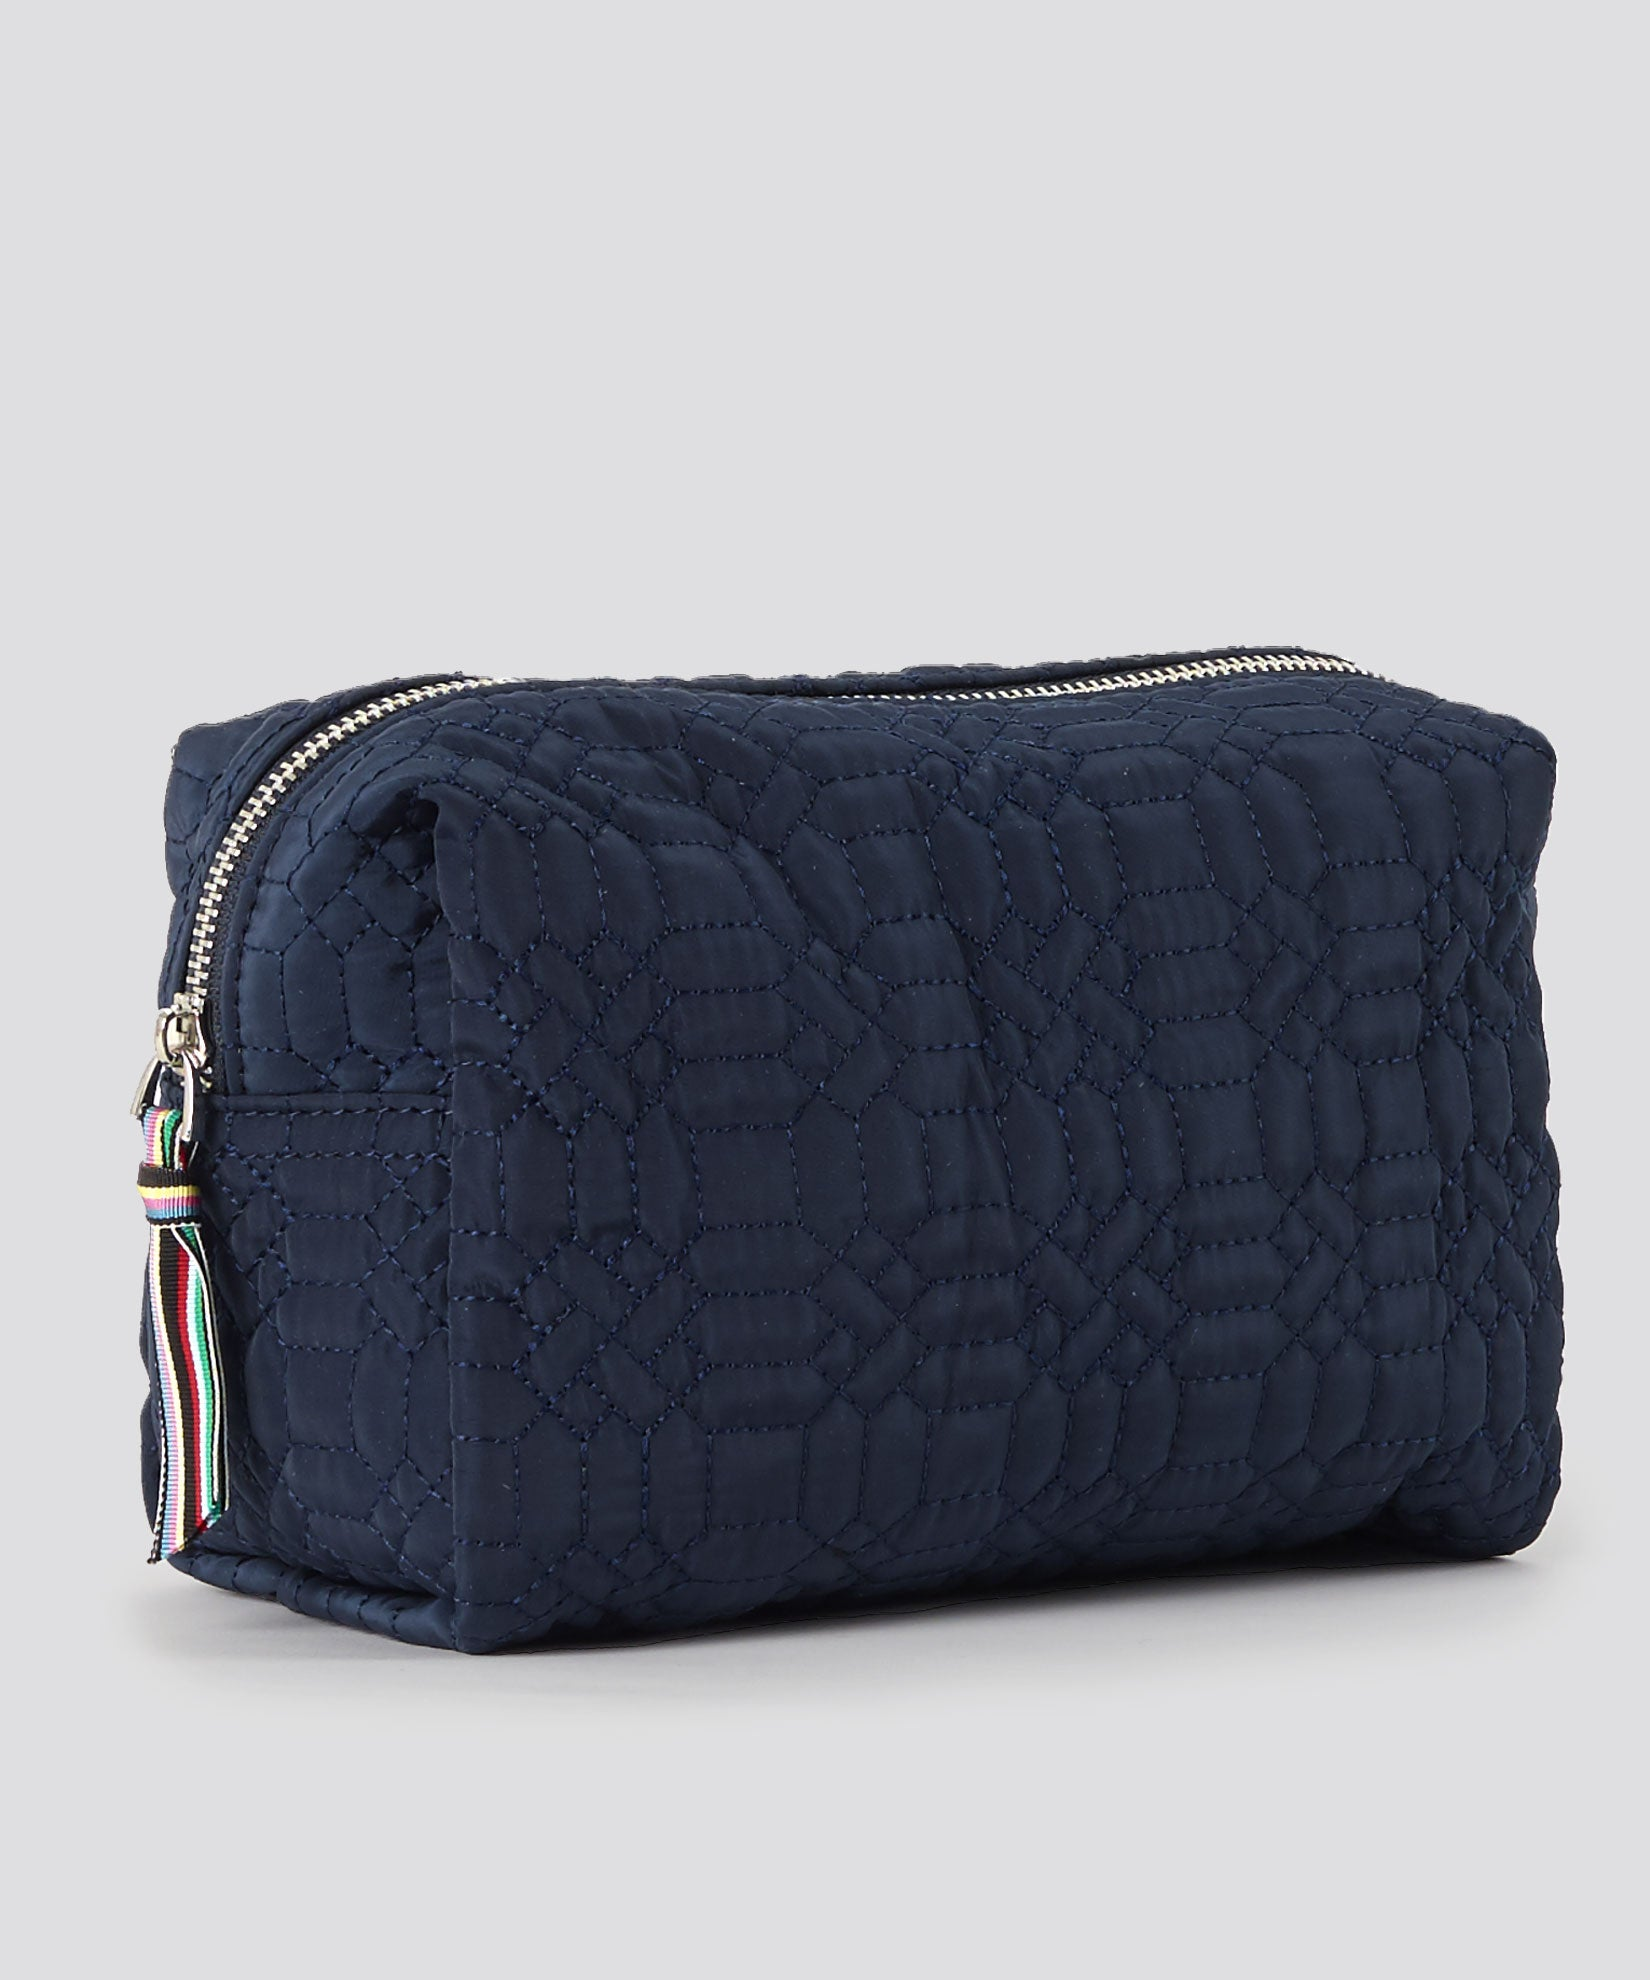 American Navy - London Cosmetic Case